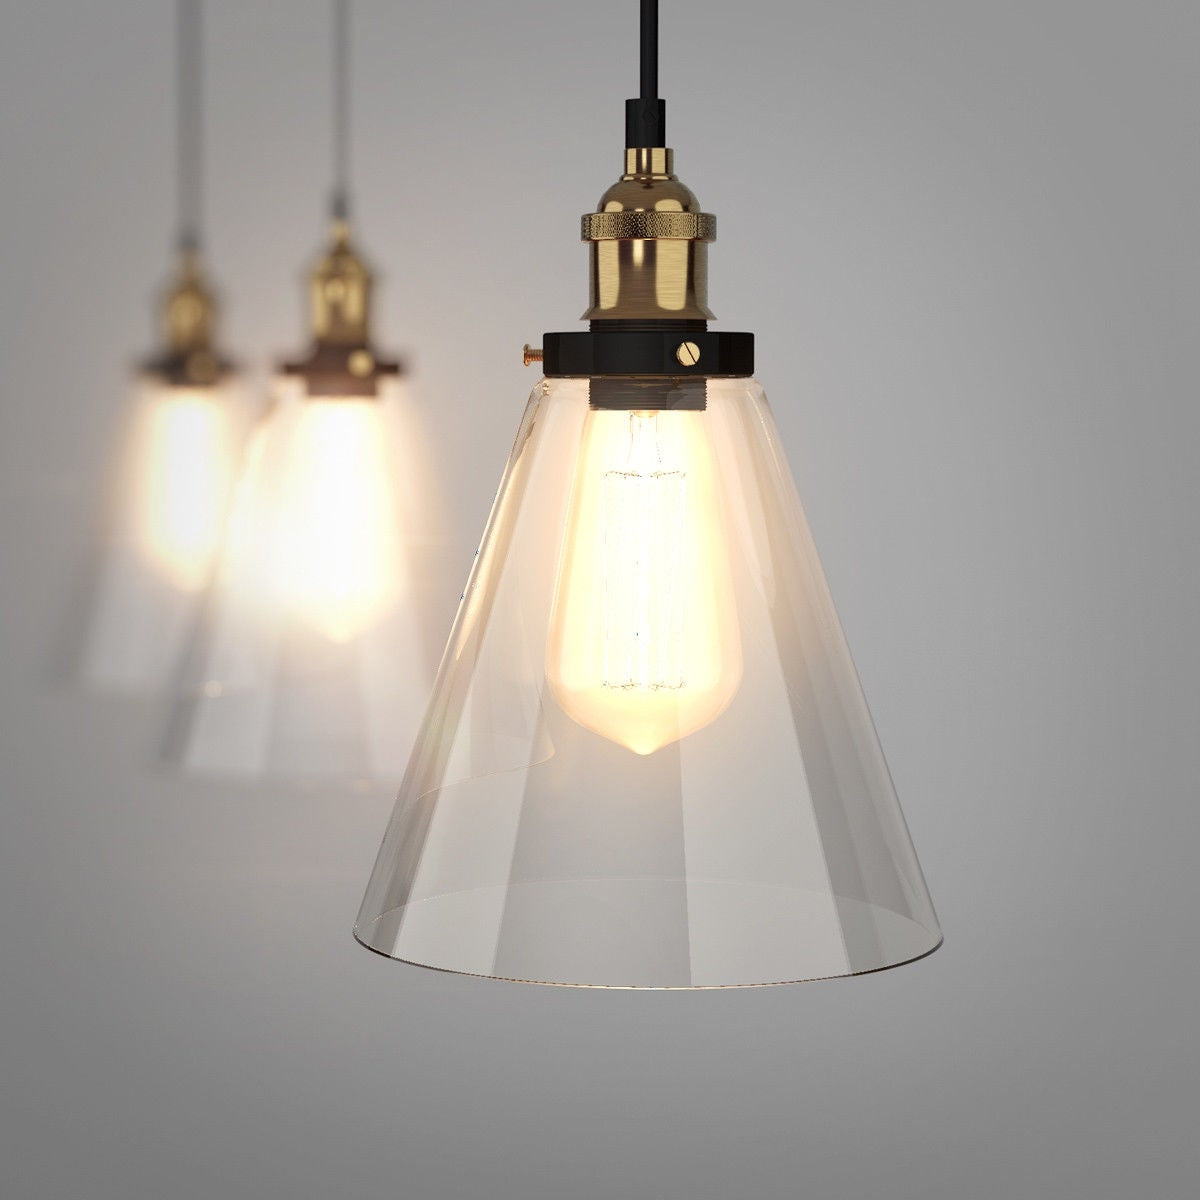 Vintage Edison 1 Light Bowl Pendants For Well Liked Gymax Vintage Style Industrial Edison Ceiling Pendant Glass Hanging Light  1 Light Bulb – As Pic (Gallery 8 of 25)